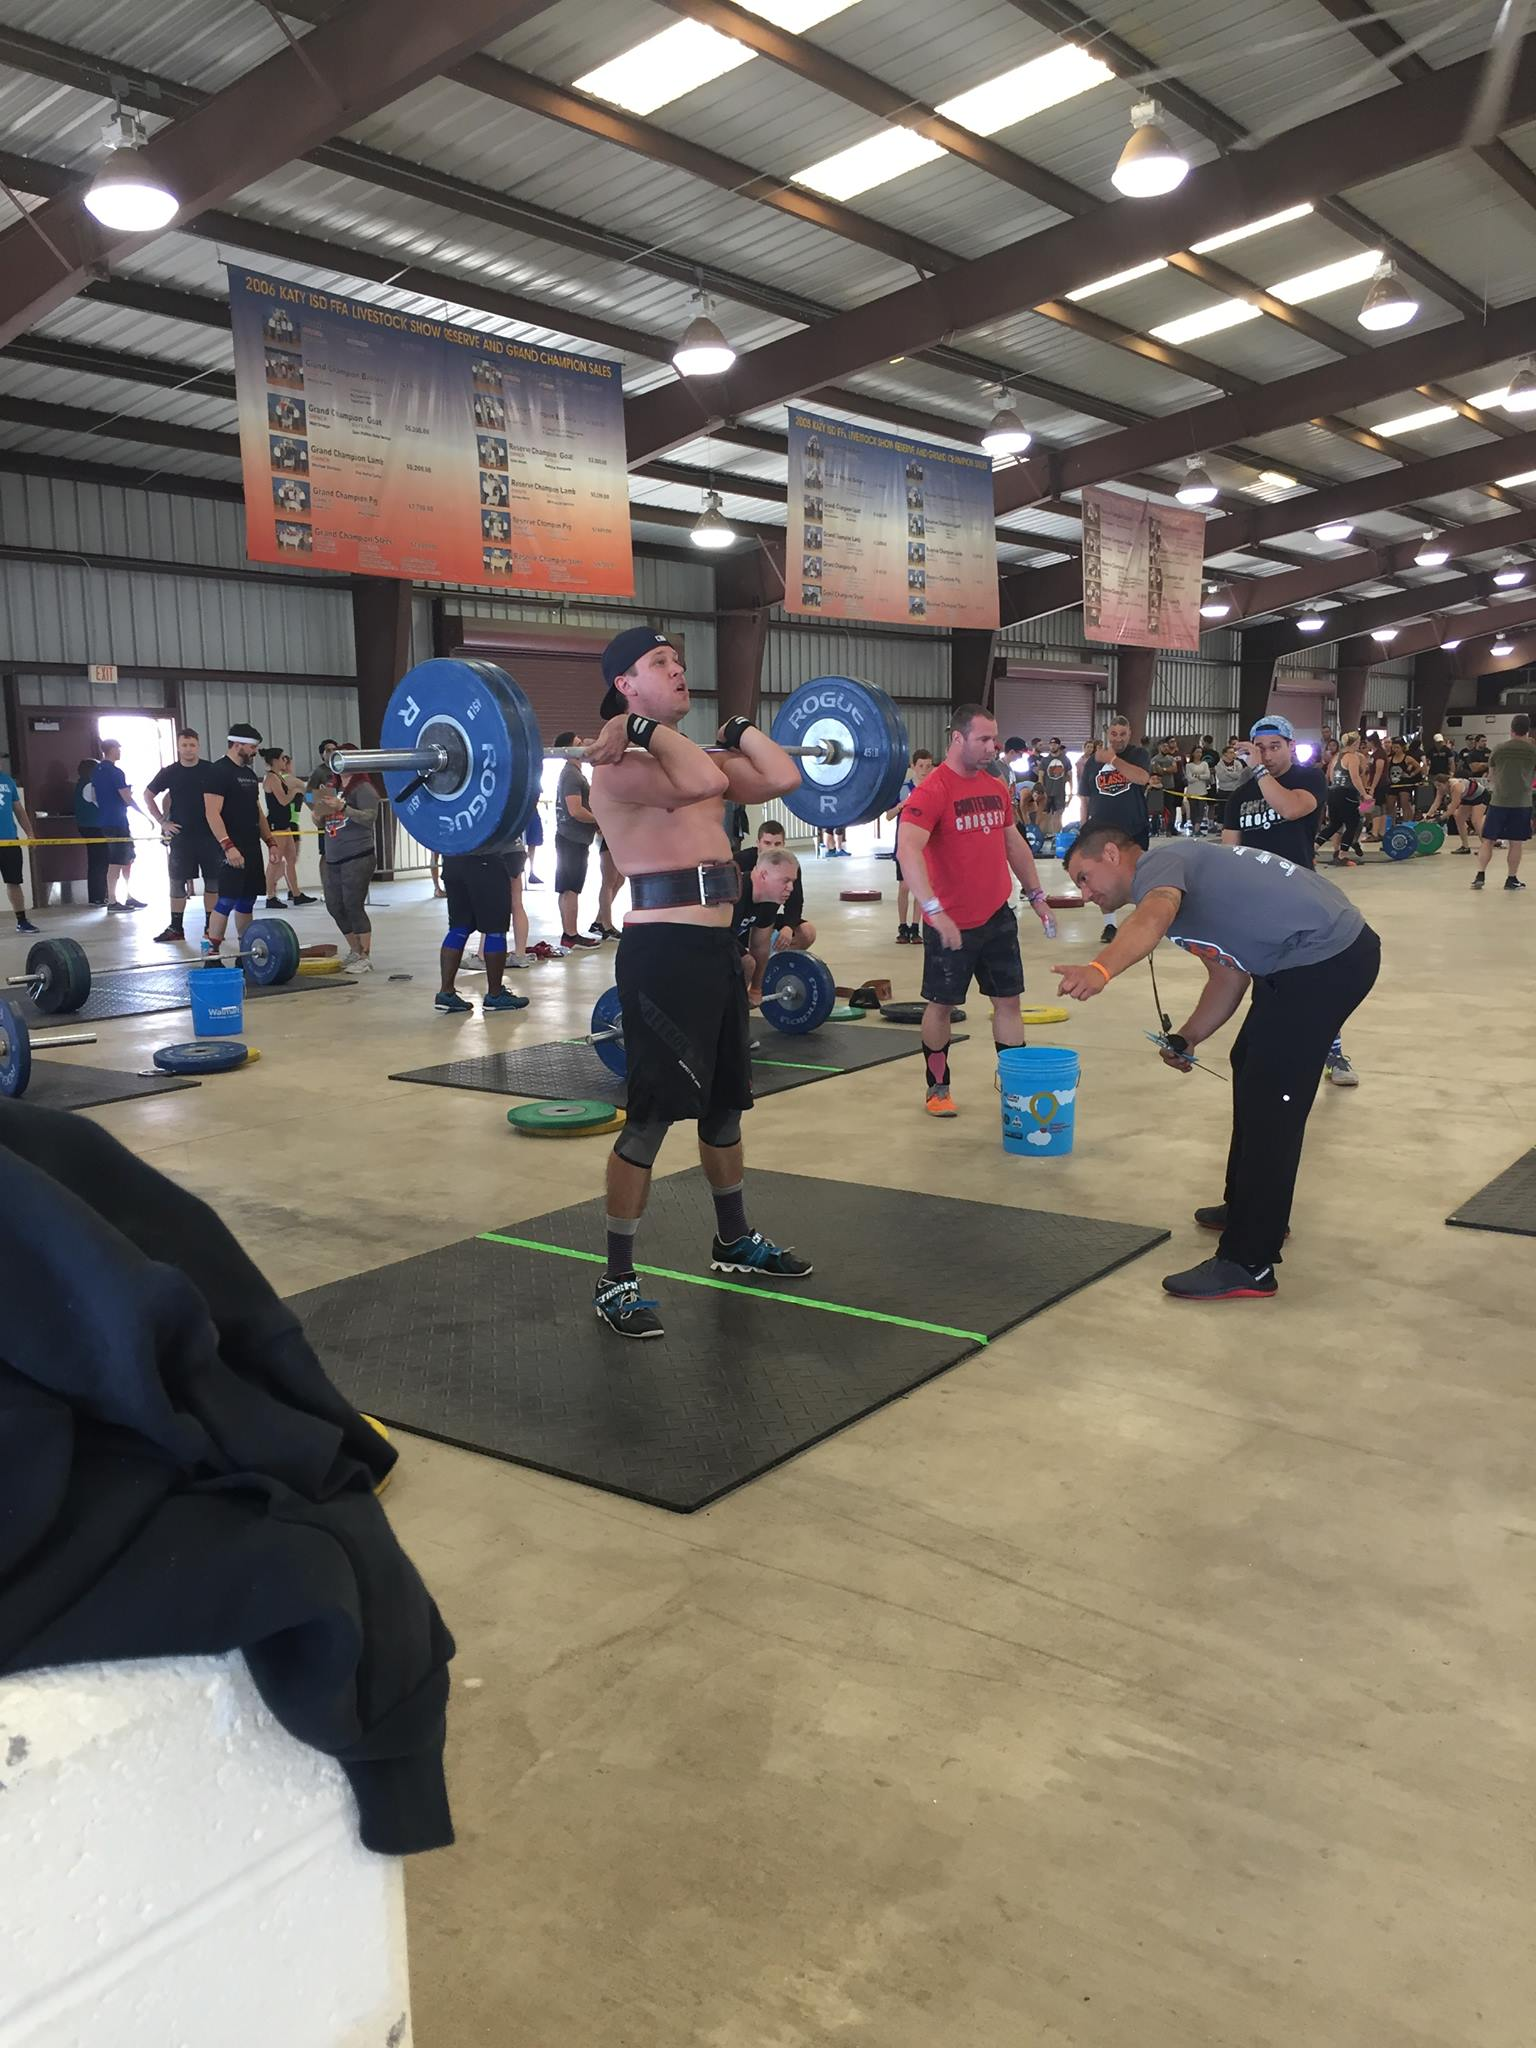 """David Burkenstock Facebook Post:  """"Usually don't post this kind of stuff but I am pretty proud of this personal best. 230 lbs squat clean into front squat. Thanks to the Skyline Family for pushing me to better every day. Of course none of this would not be possible with an amazing woman to constantly love and support me Julie Burkenstock"""""""